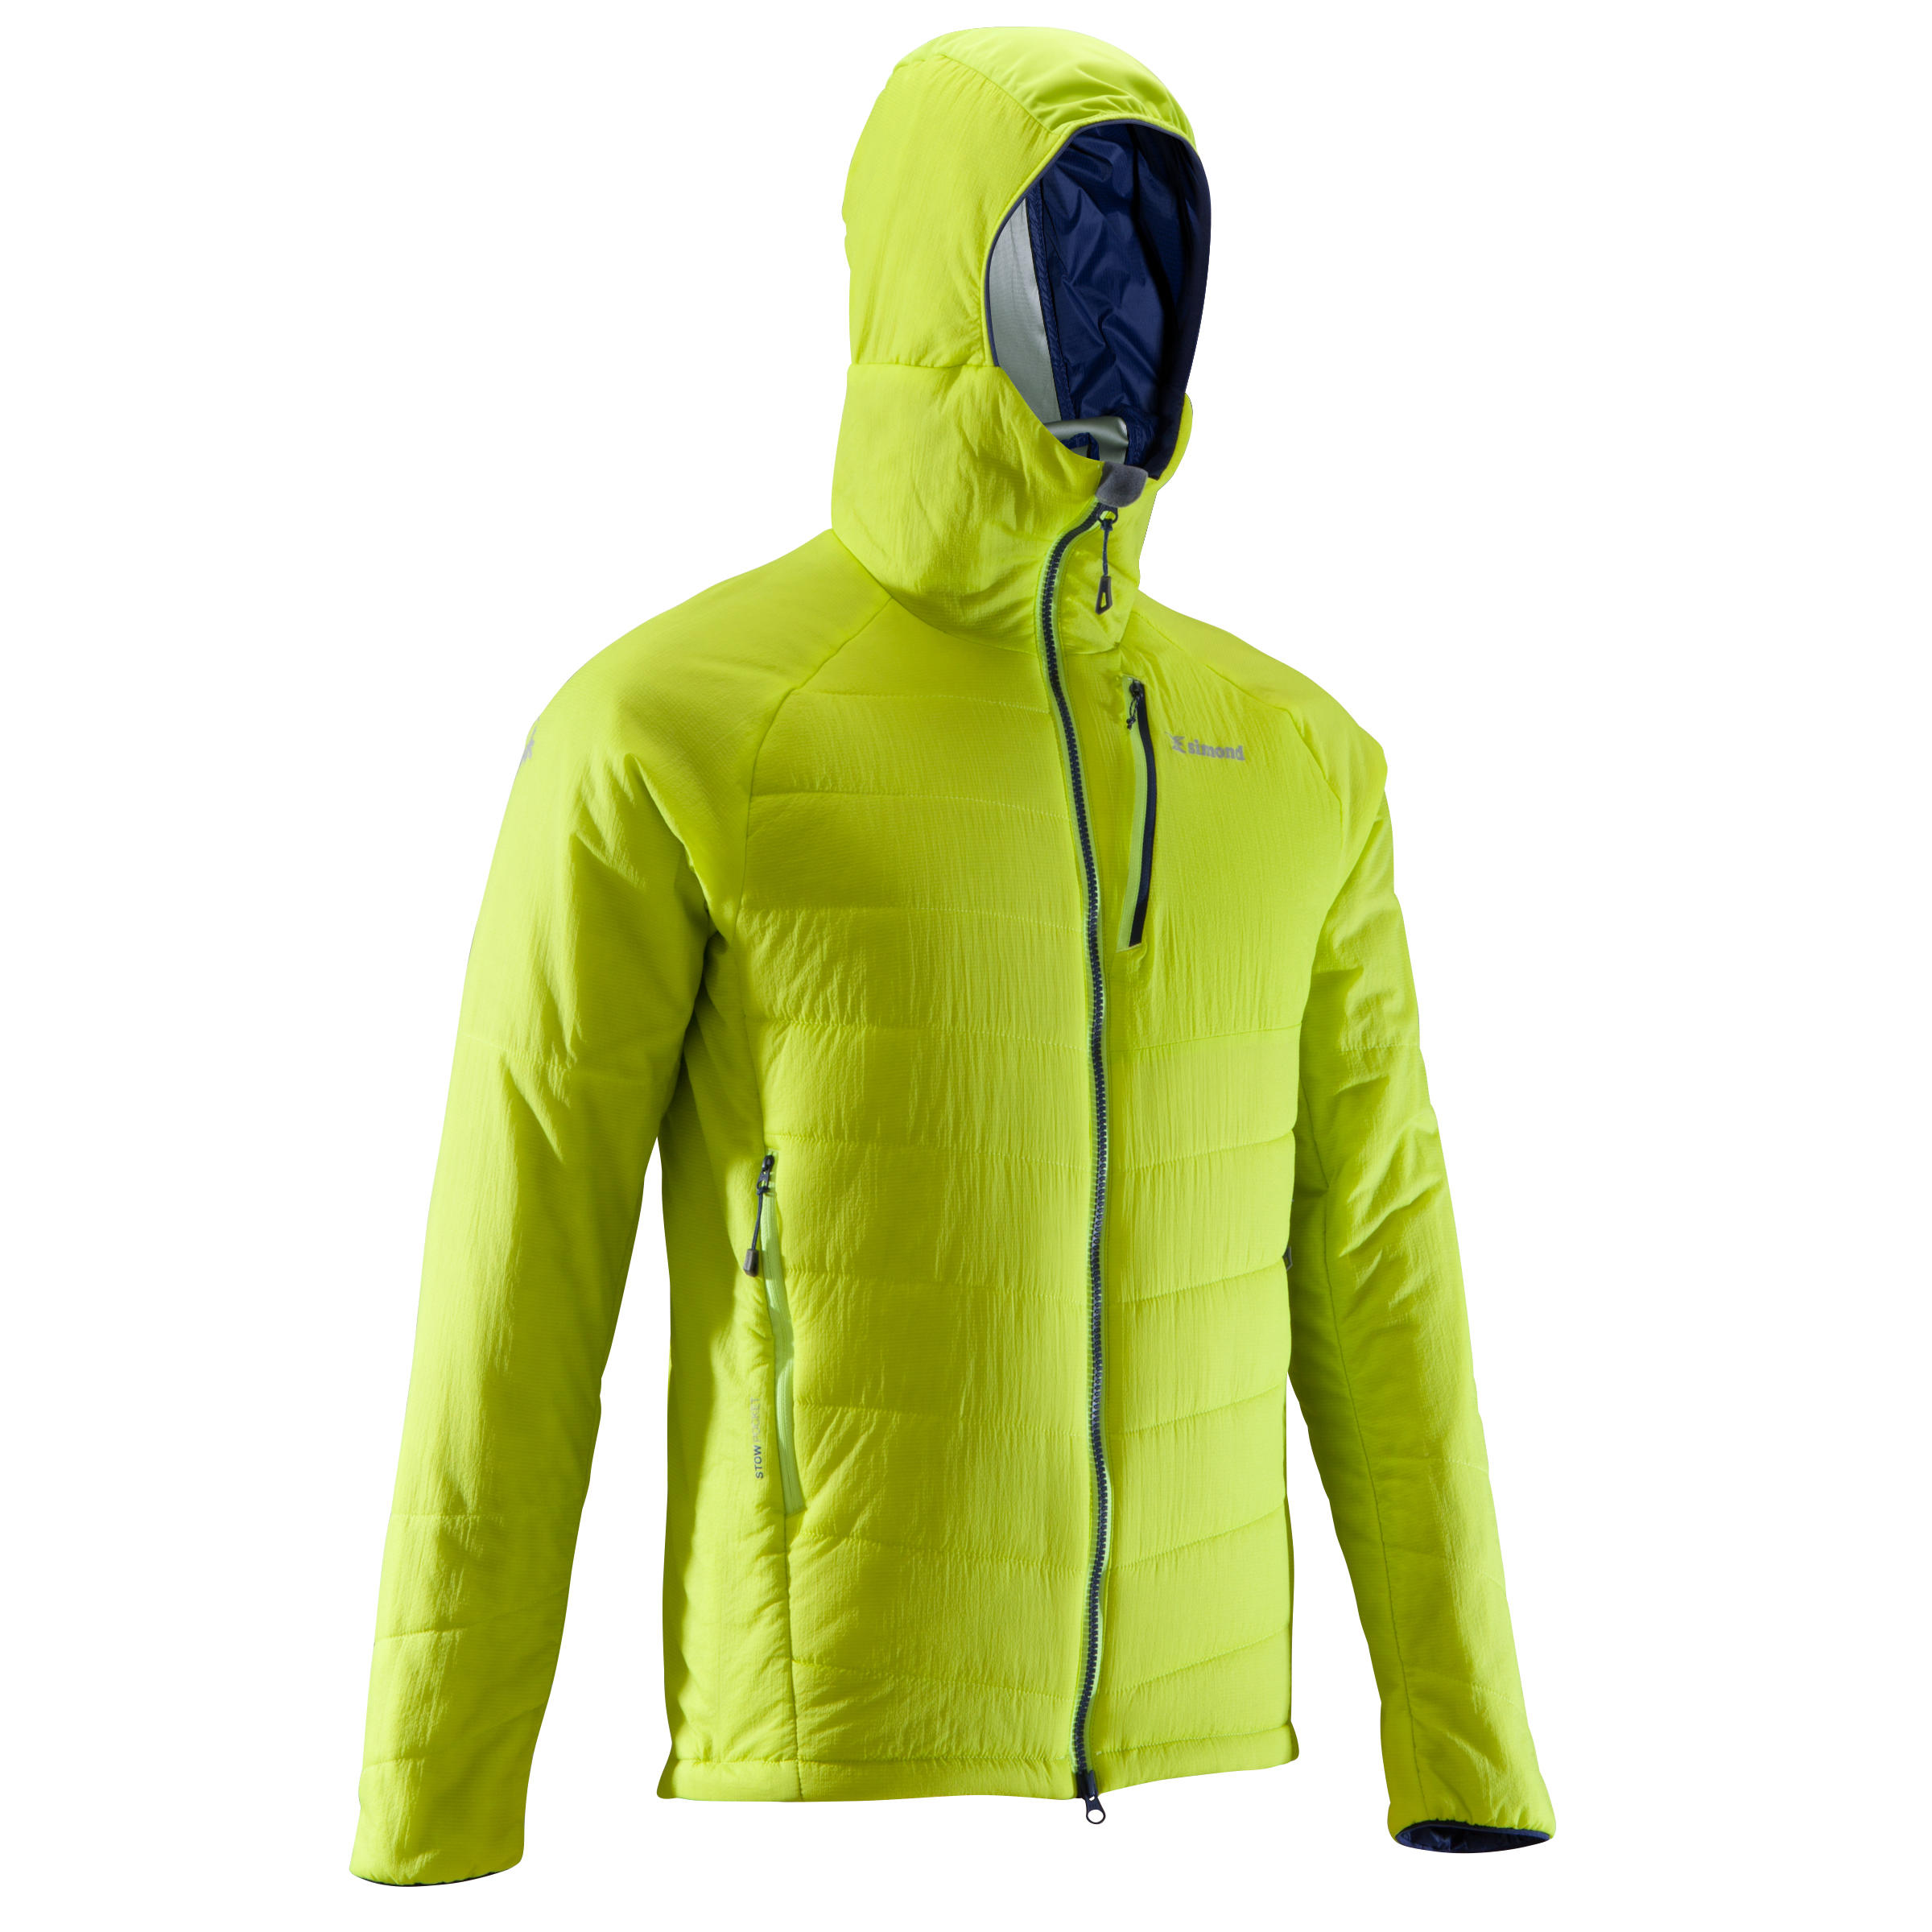 Men's Mountaineering Padded Jacket - Aniseed Green & Cosmos Blue